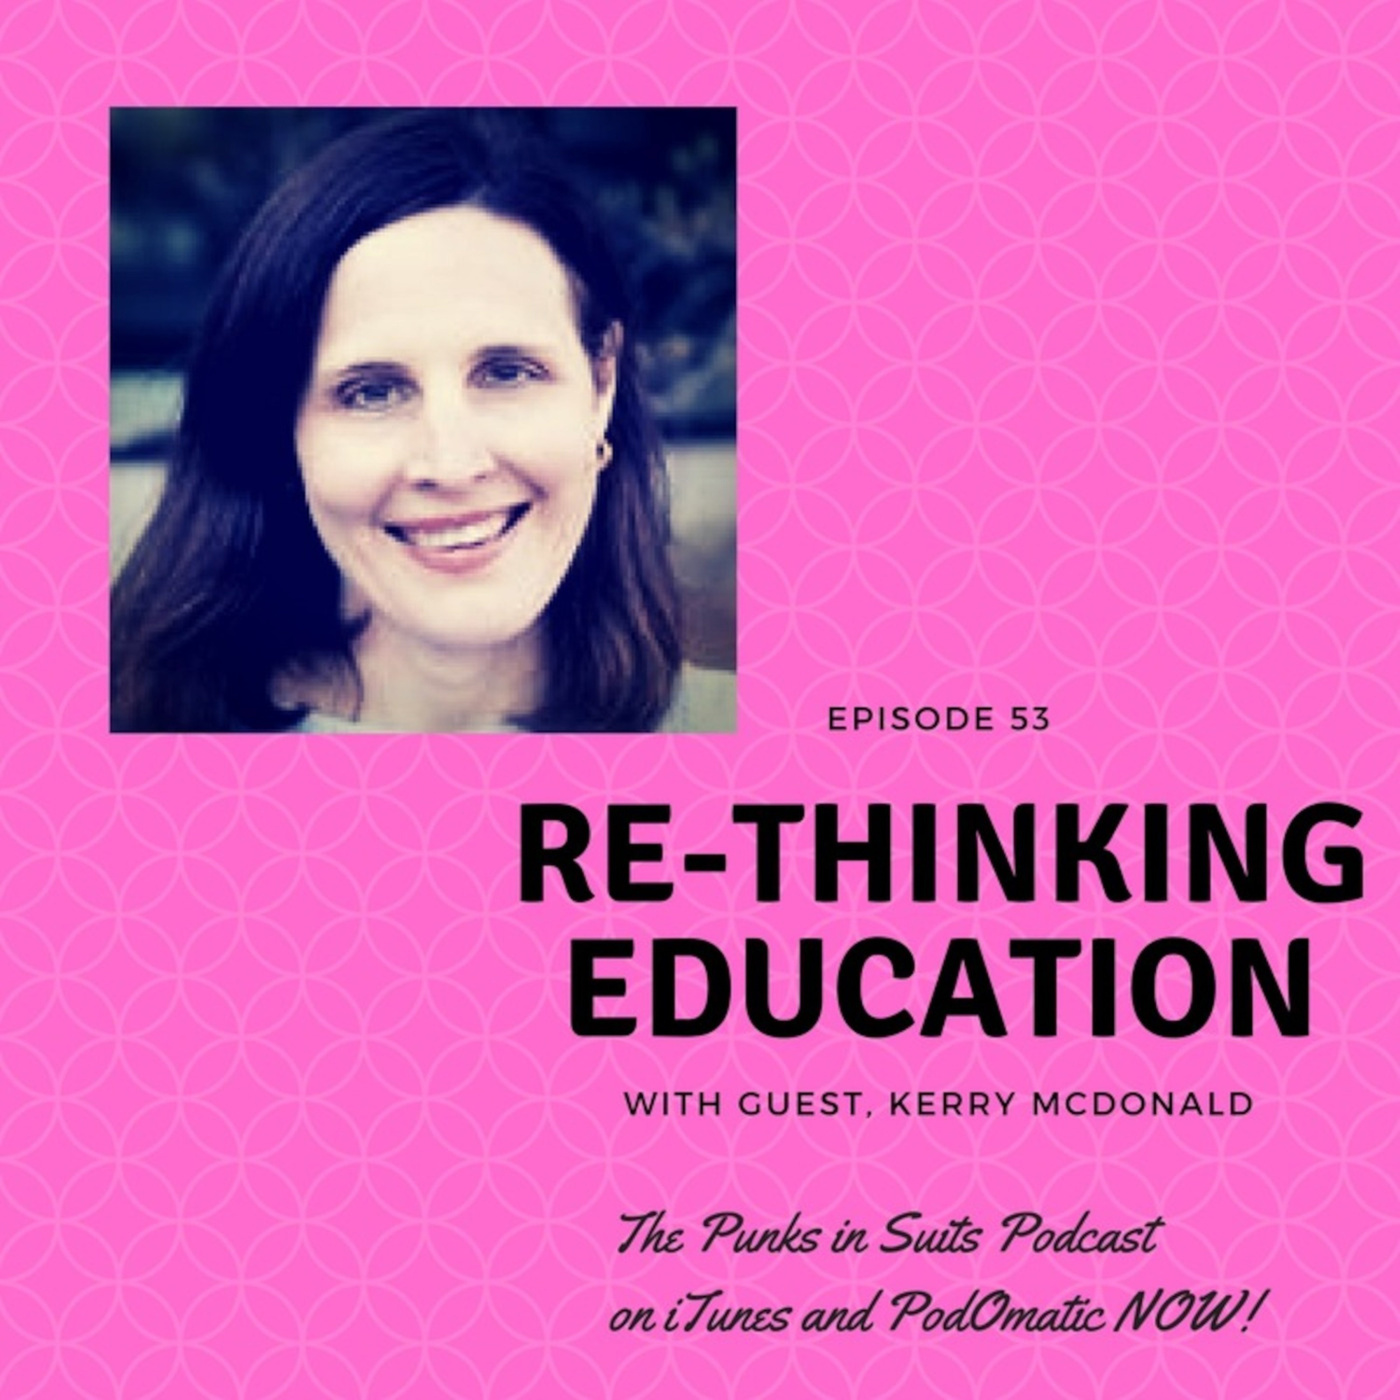 Episode 53: Re-Thinking Education